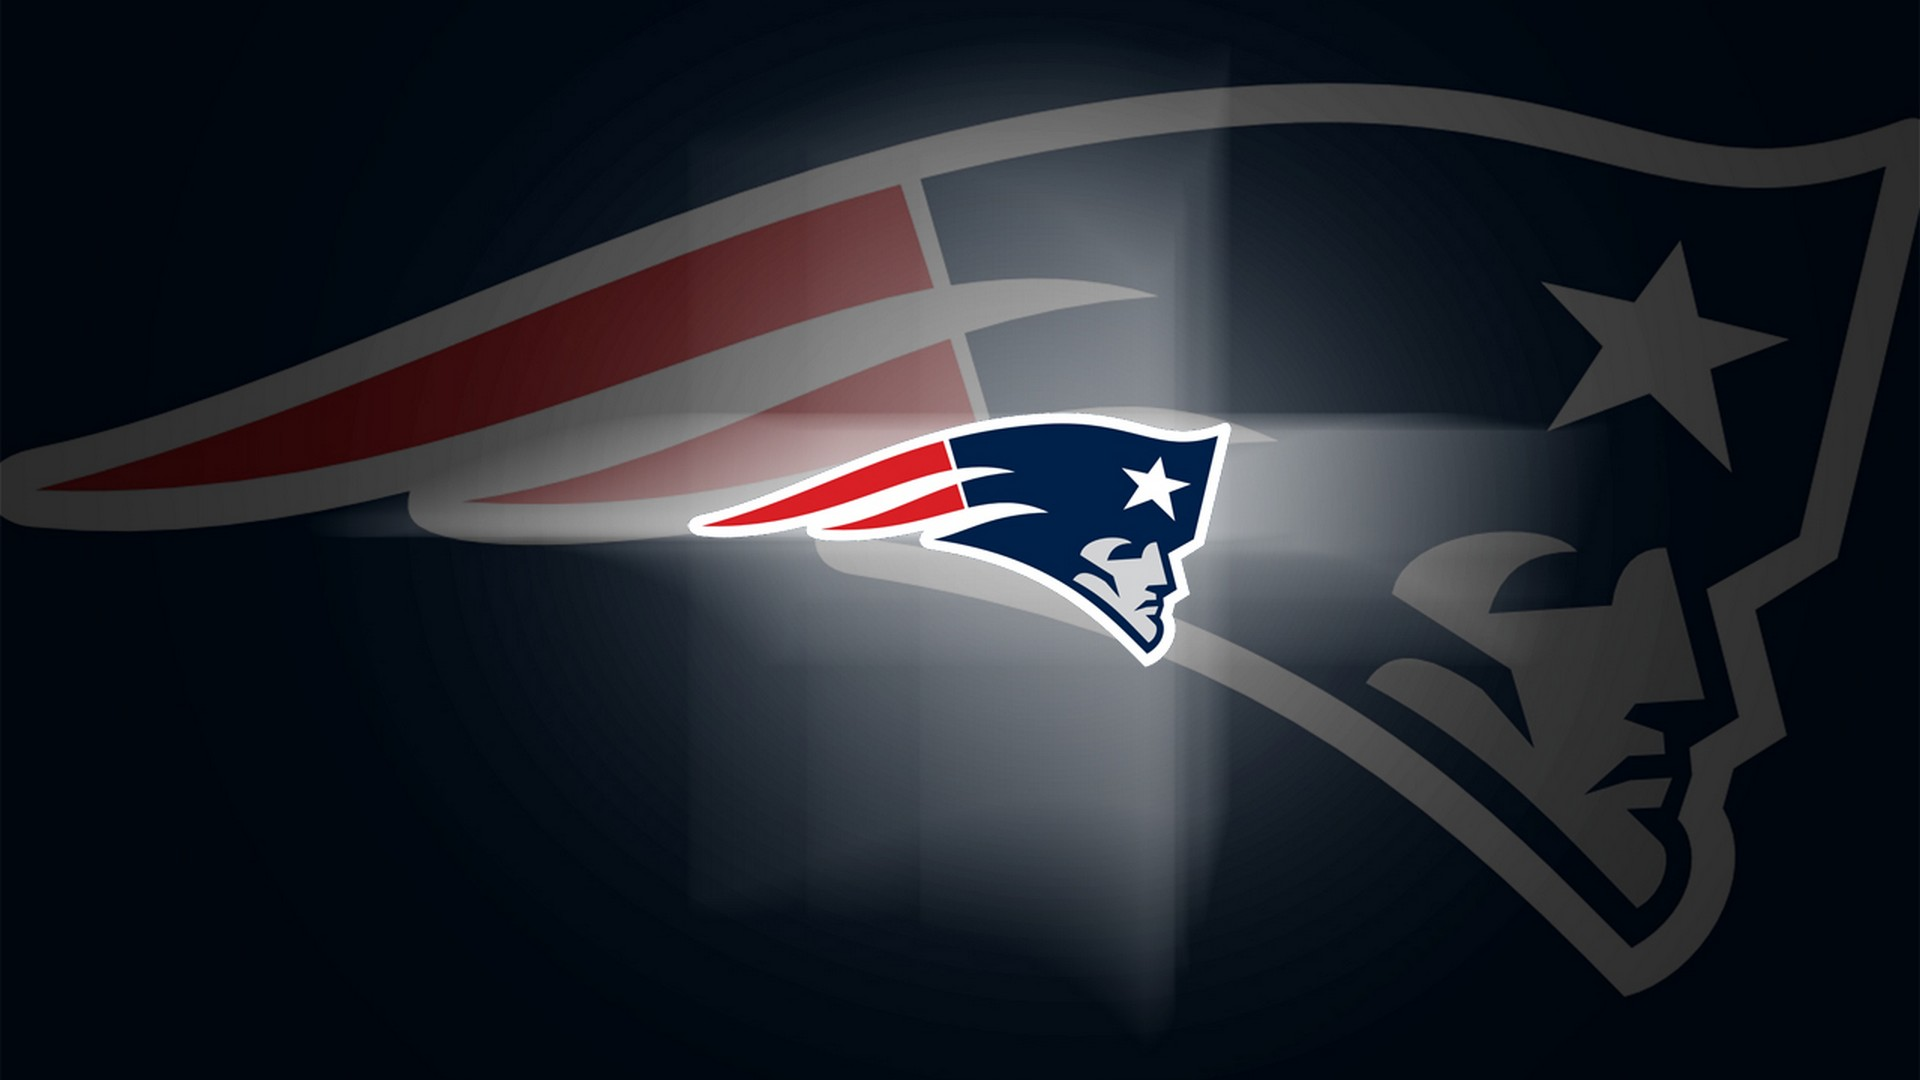 Wallpapers New England Patriots With Resolution Pixel - New England Patriots Colors - HD Wallpaper